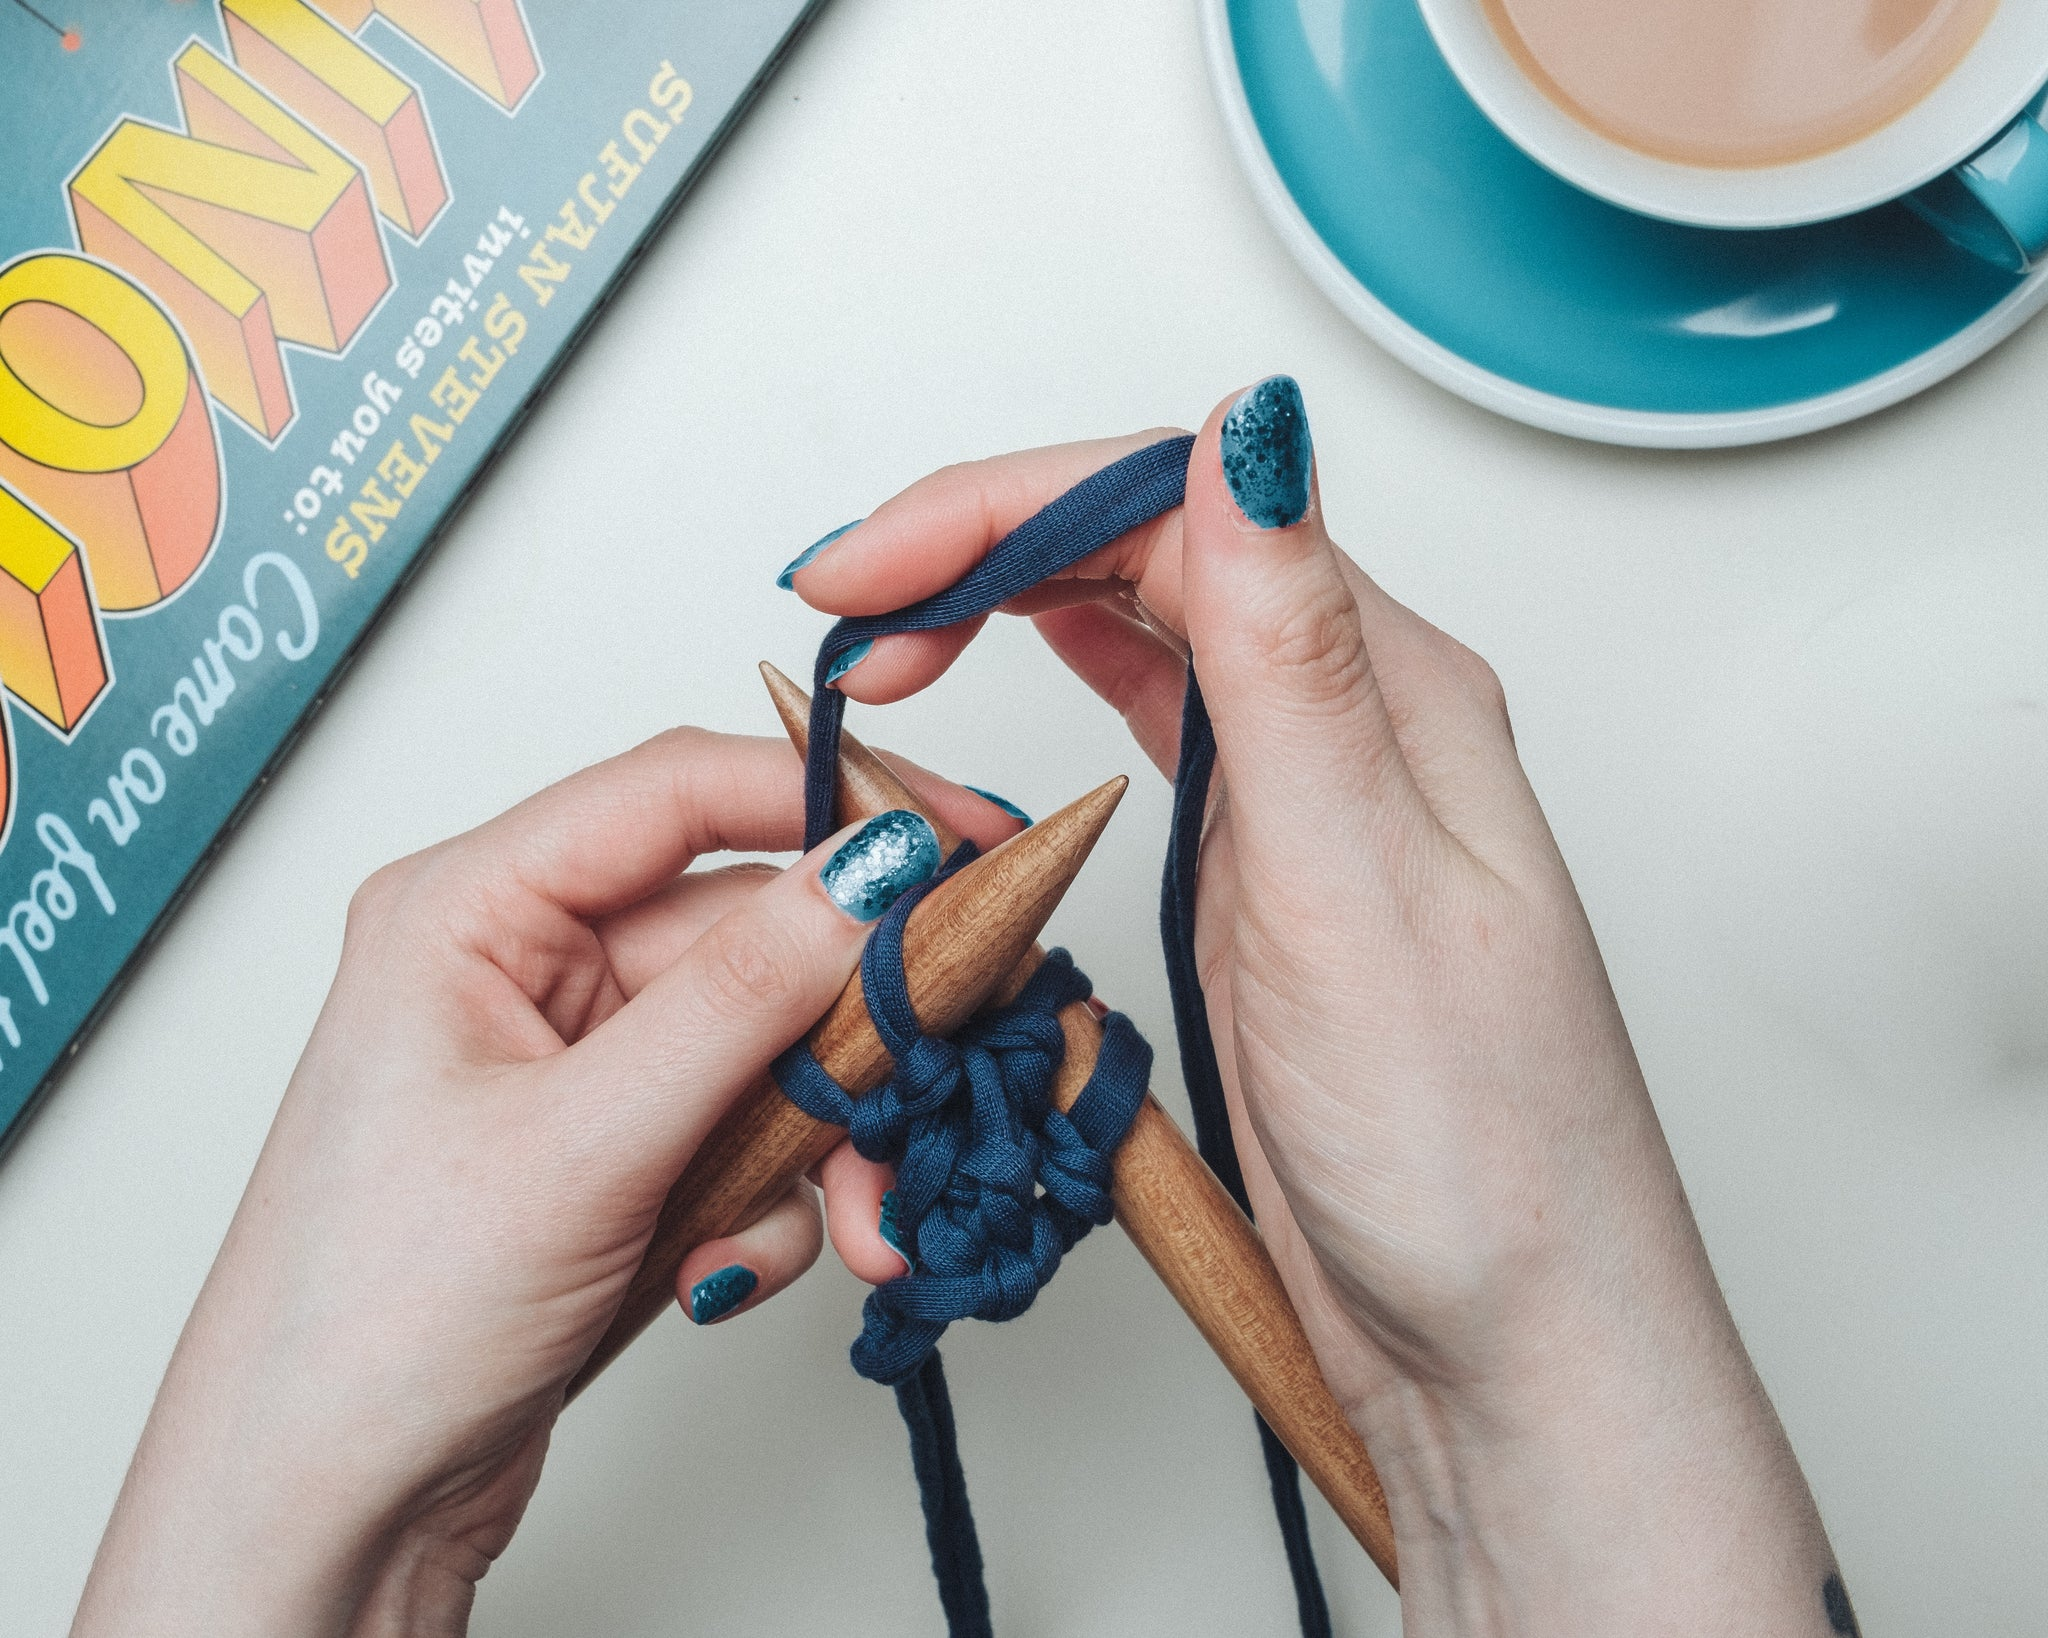 Learn to Knit with KnittyGrittyYarnGirl